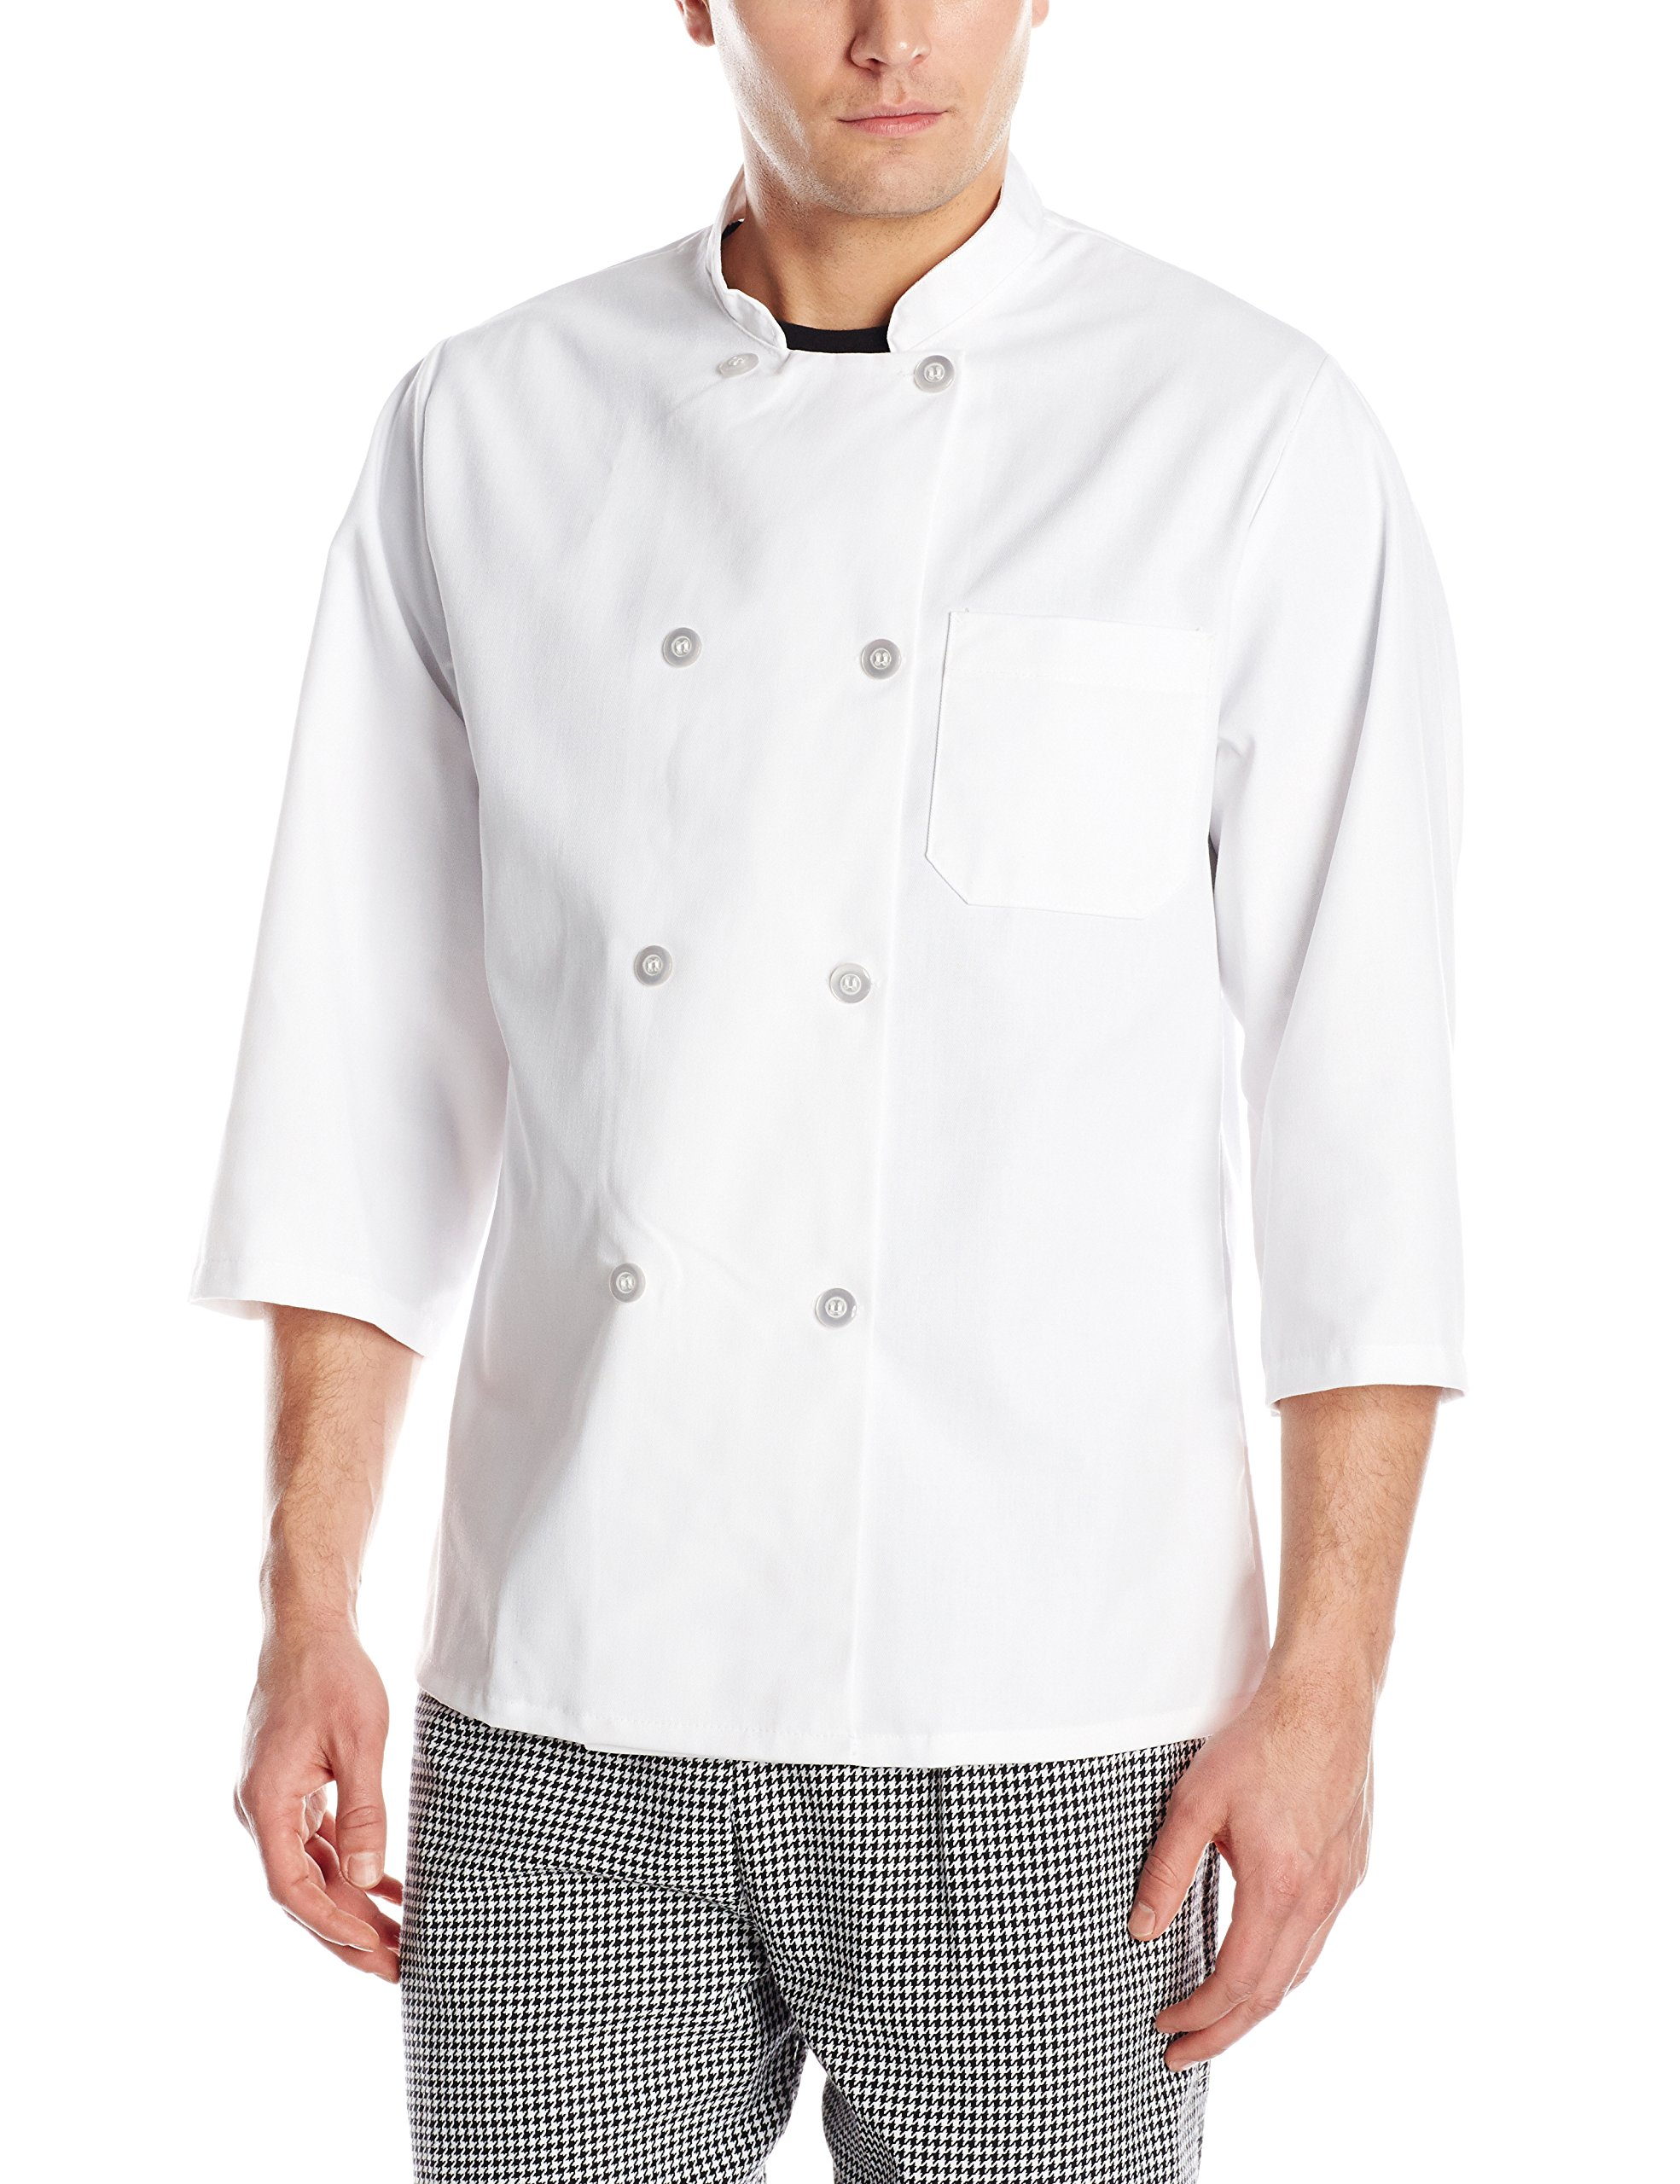 Chef Designs Red Kap Sleeve Chef Coat, White, X-Large